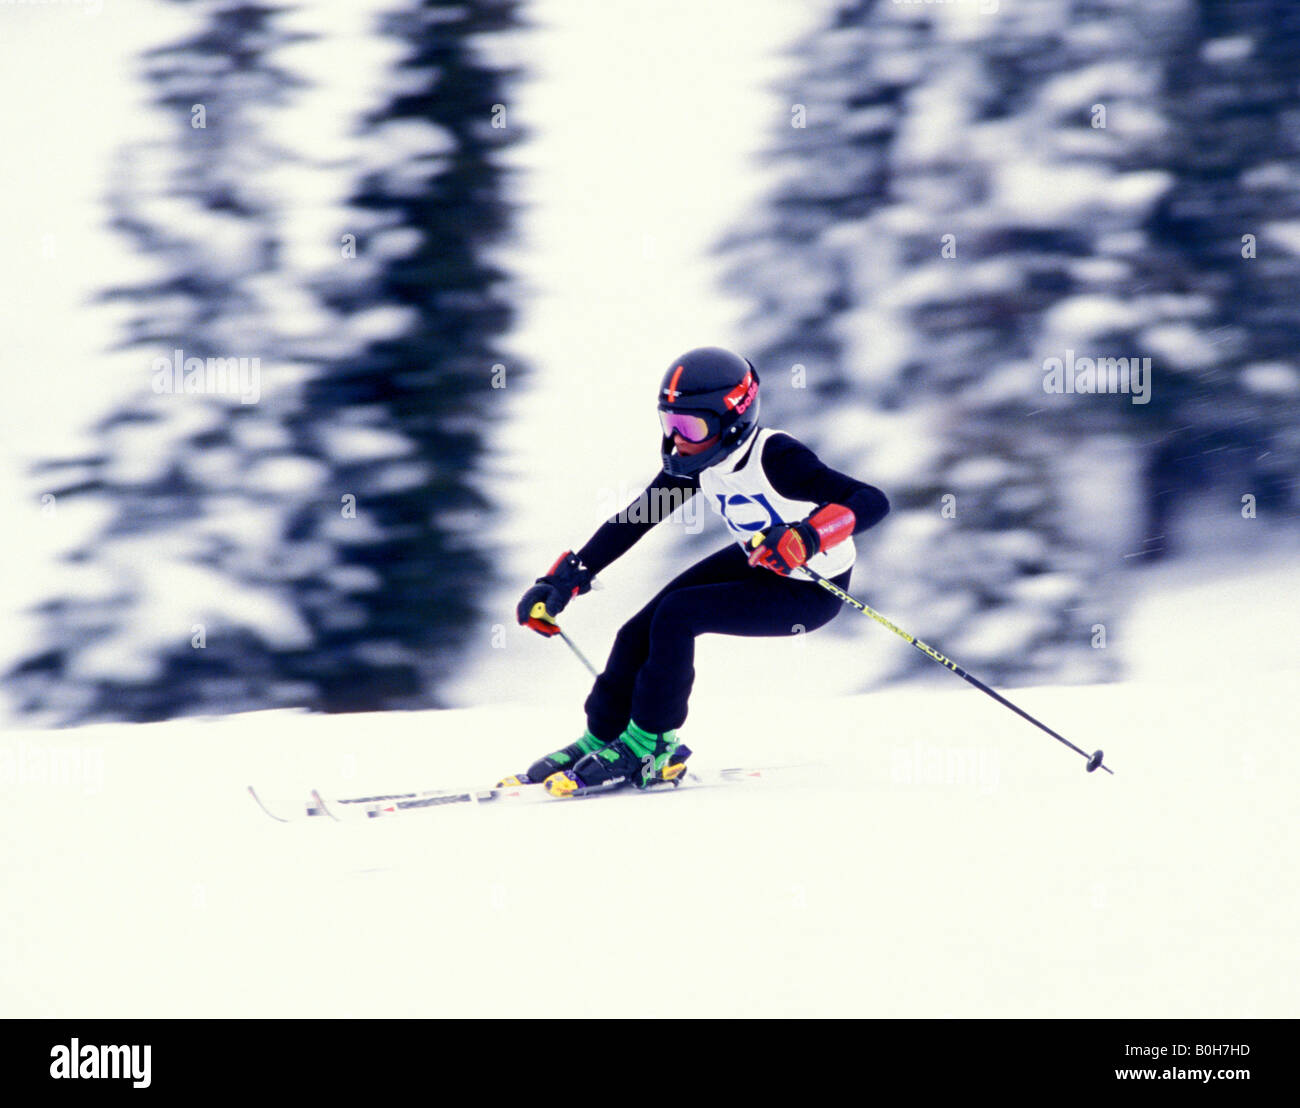 A 14 year old downhill racer speeds through a turn in a race - Stock Image